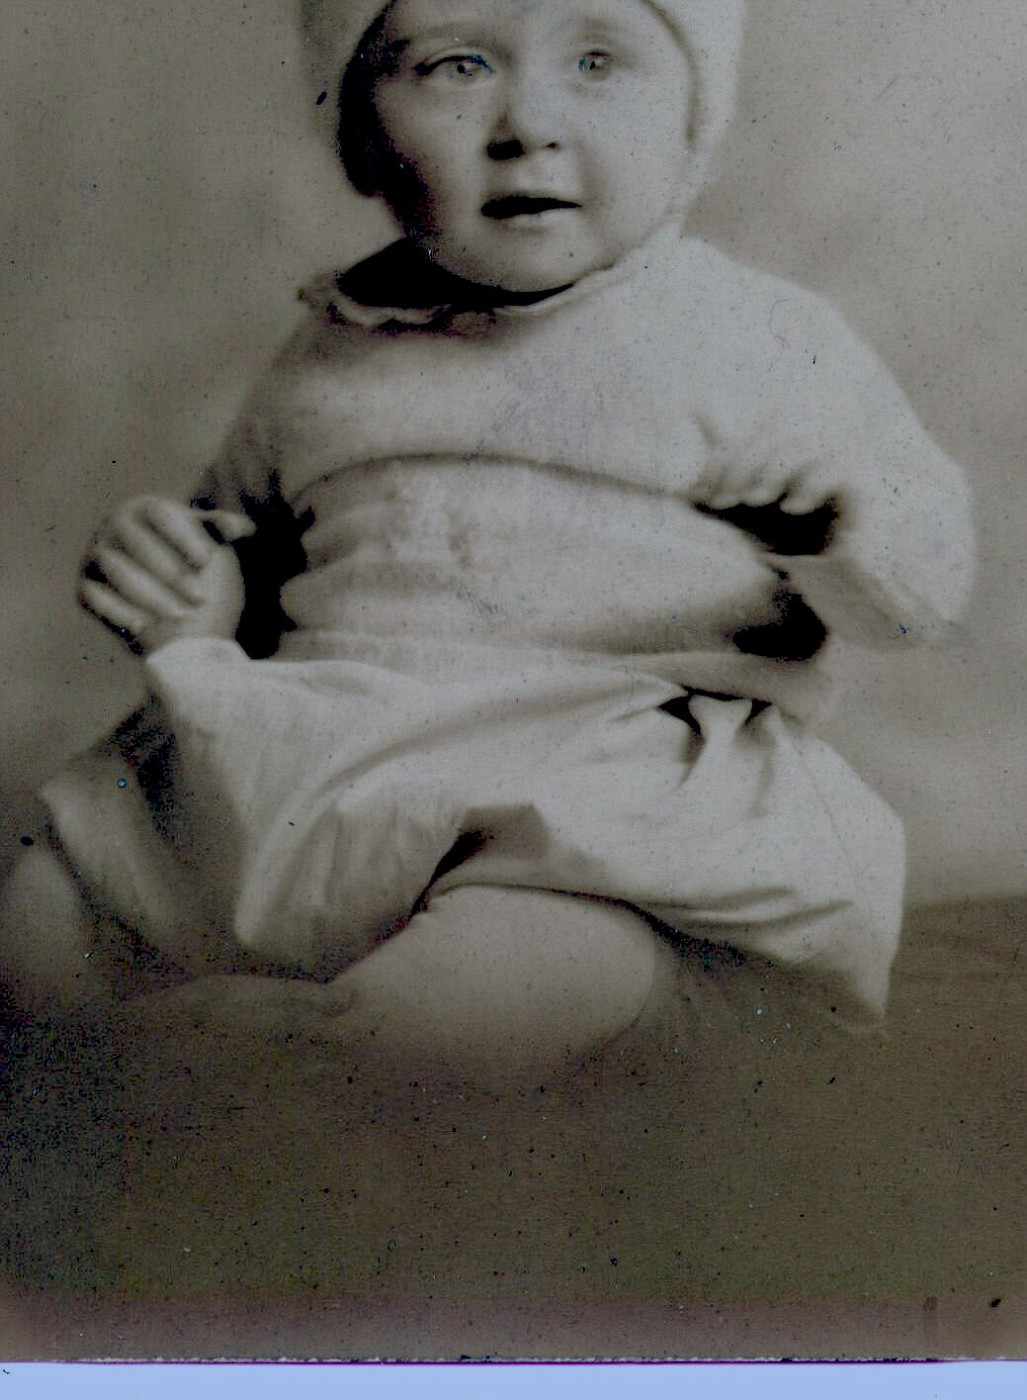 YOUNG RON--HIS FIRST YEAR